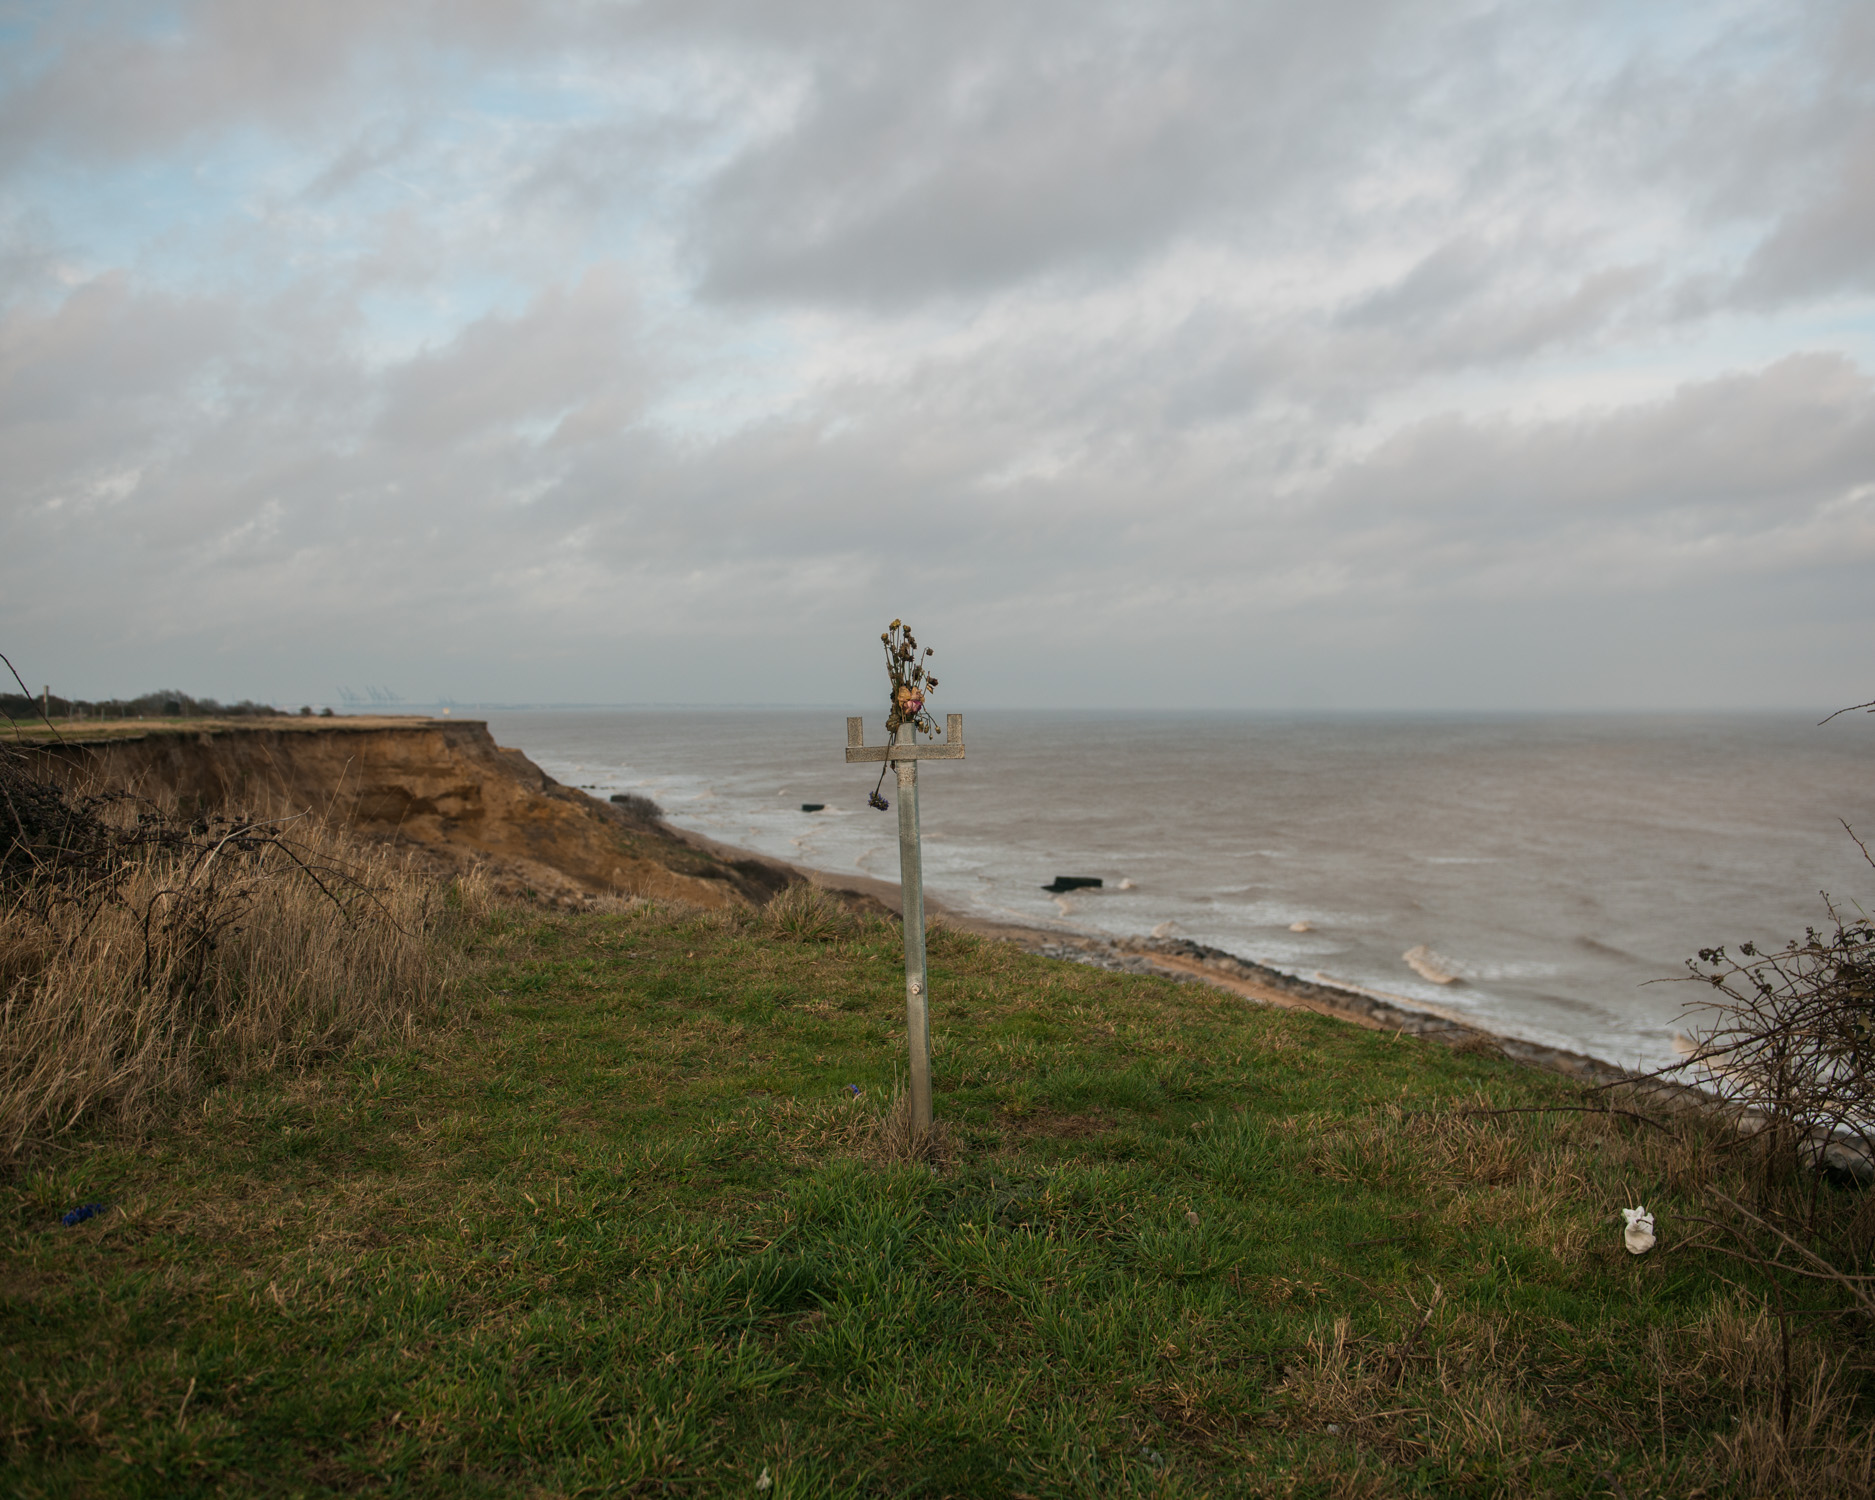 The last remaining railing of the steps that used to lead down to the beach near Hopton, Suffolk, memorialised with plastic flowers.